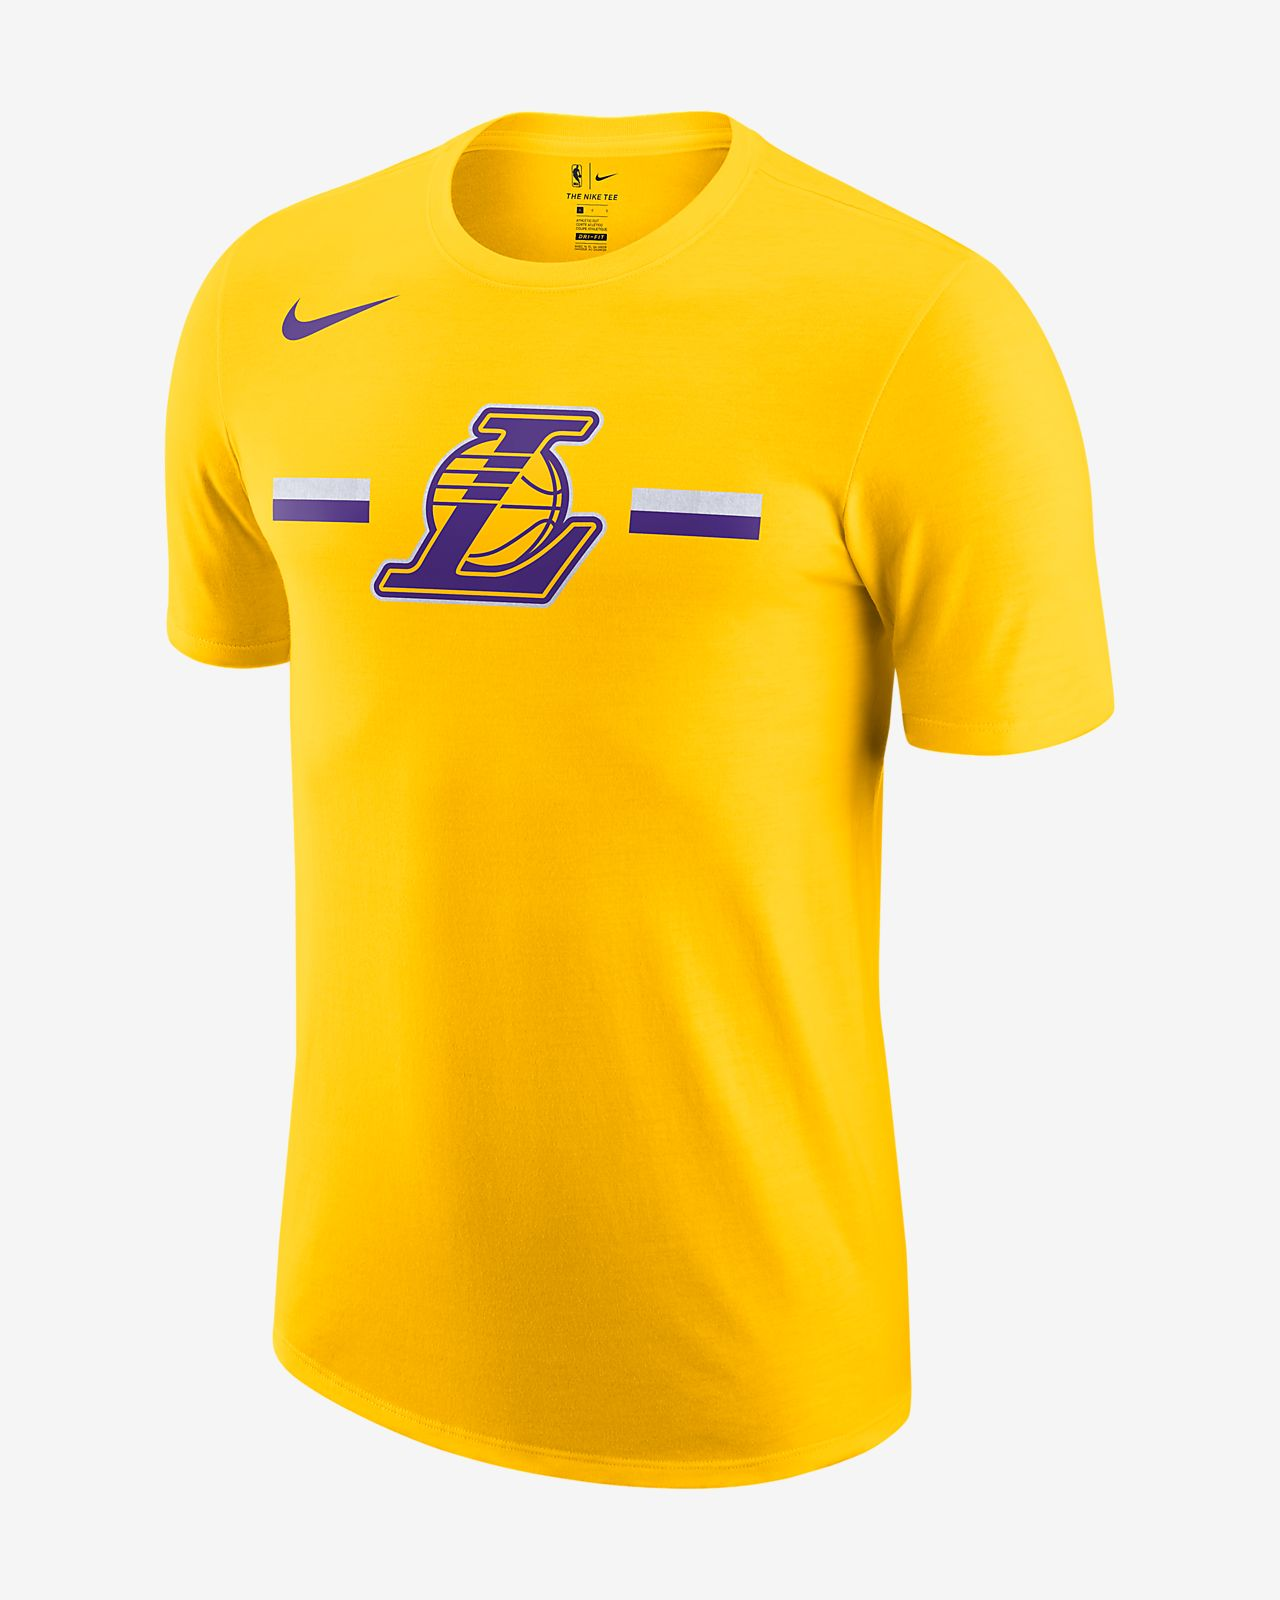 145ed177 Los Angeles Lakers Nike Dri-FIT Men's NBA T-Shirt. Nike.com